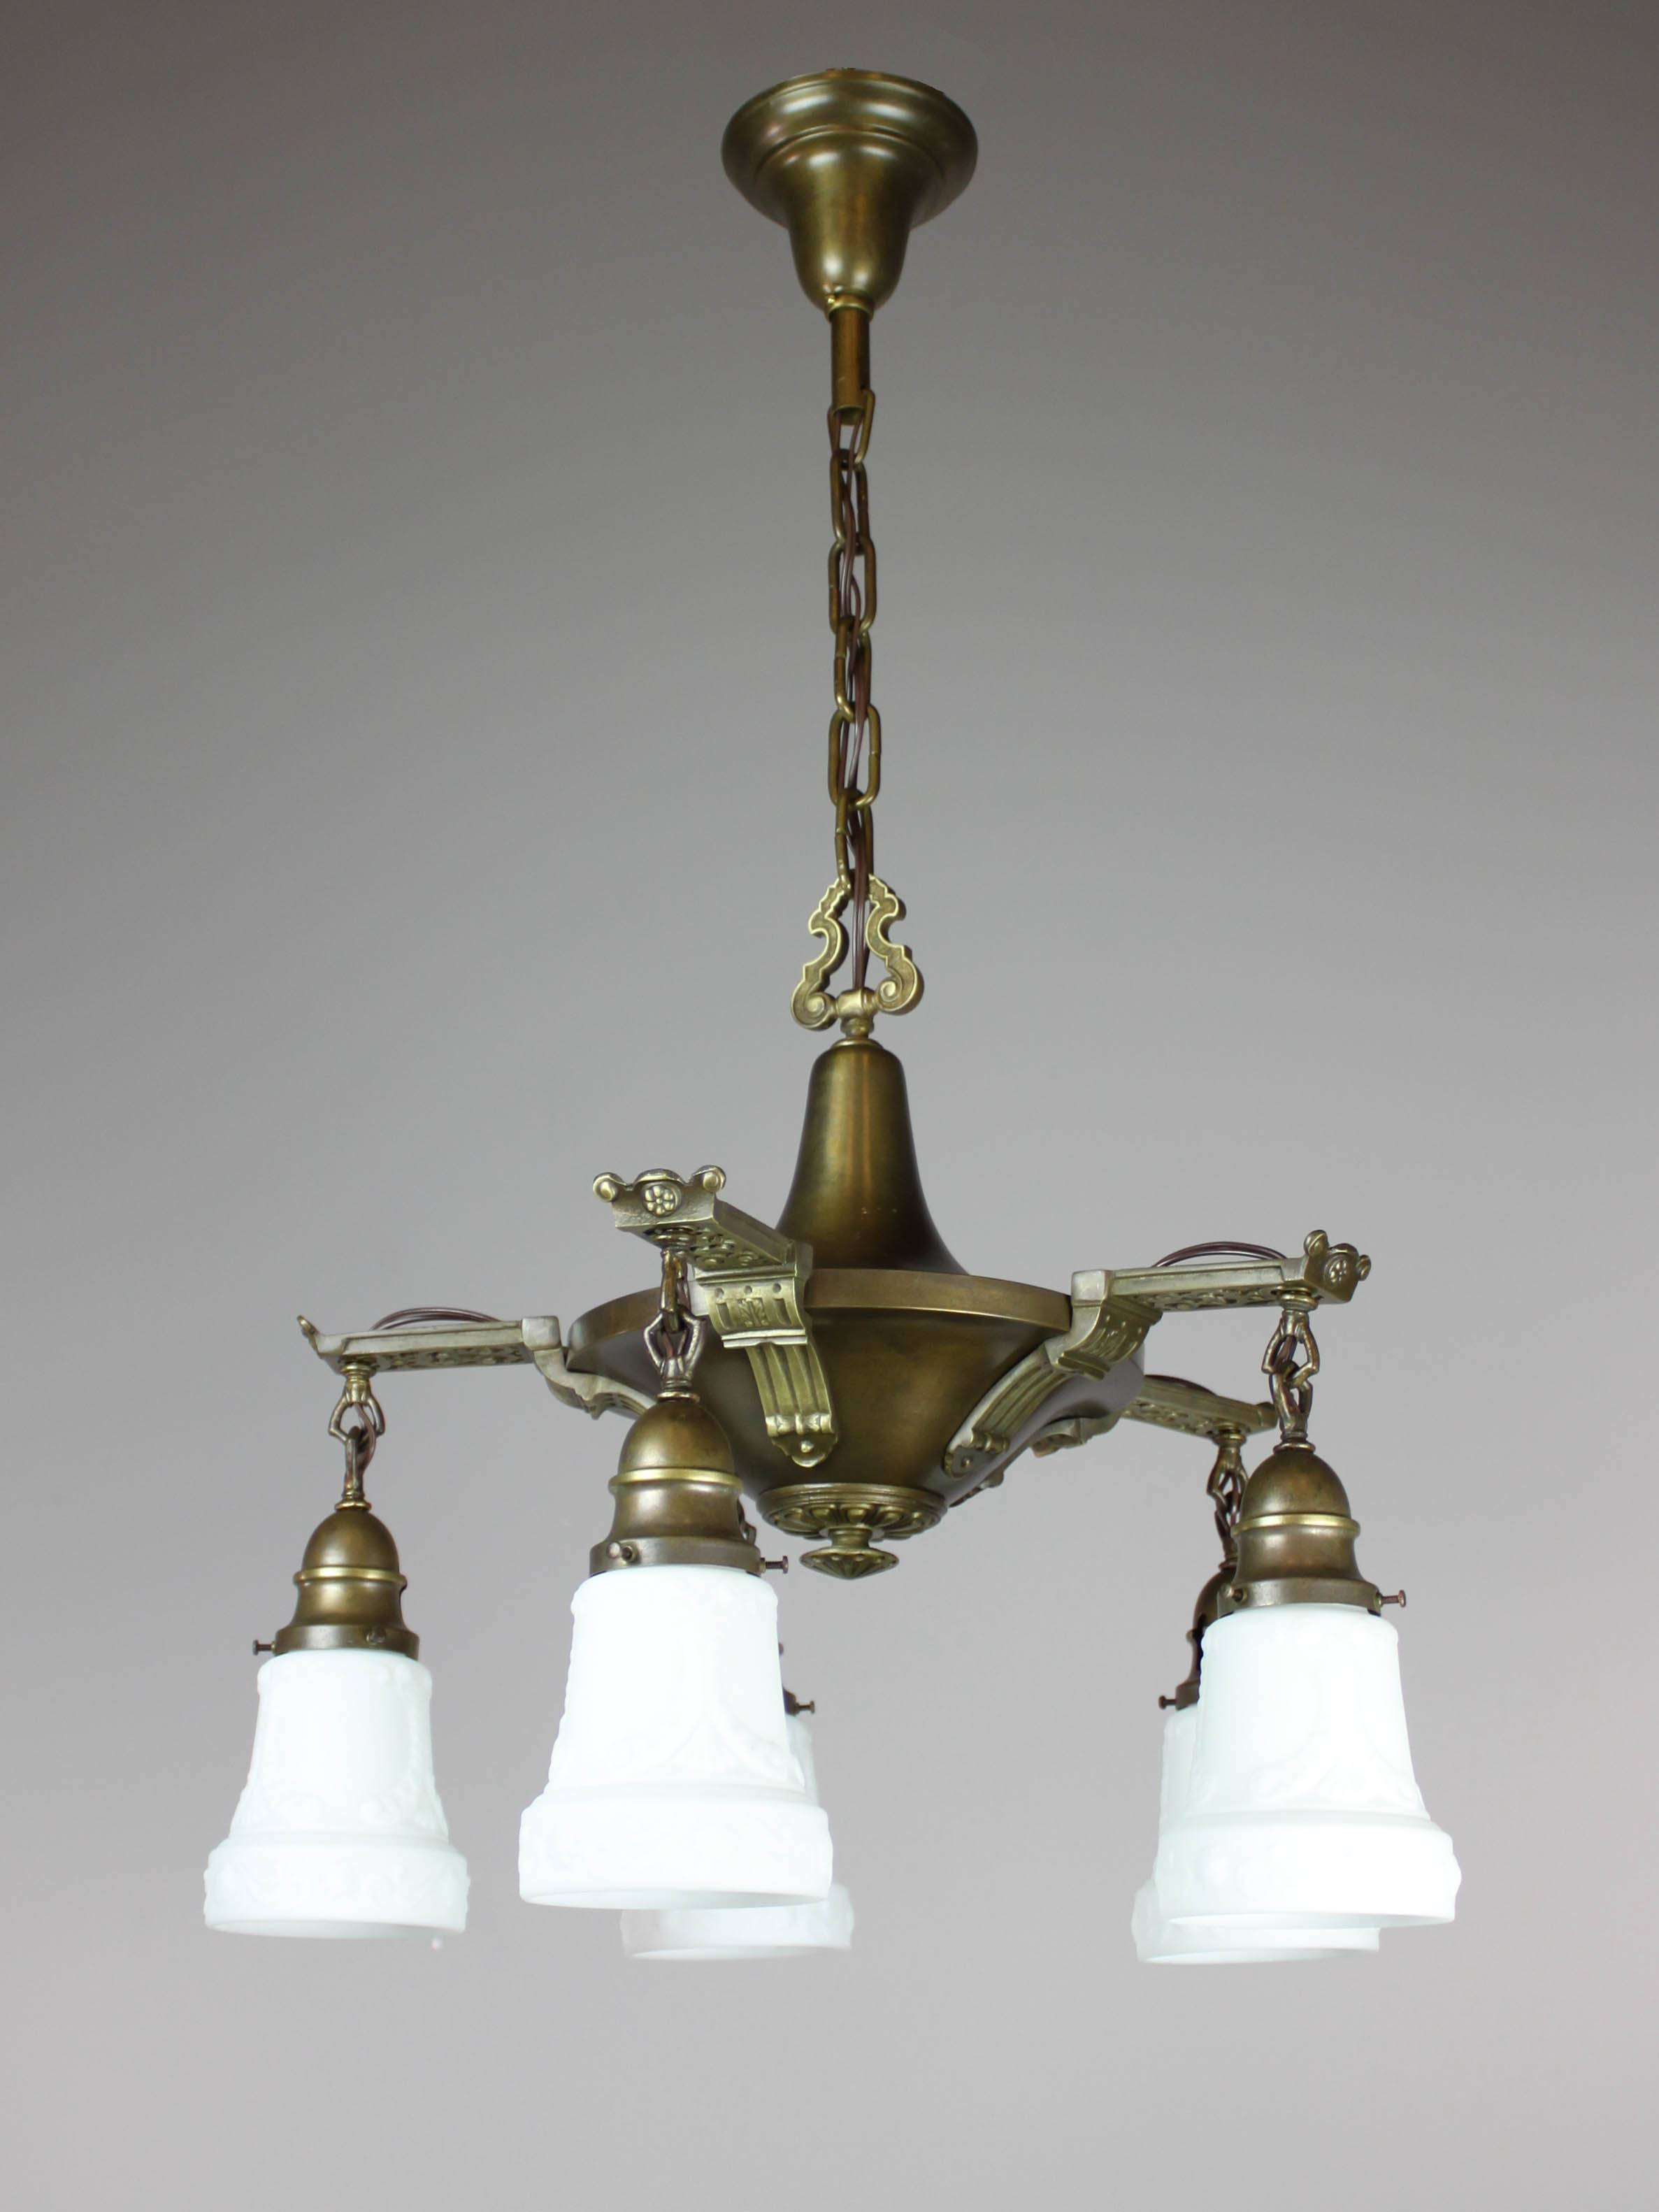 Antique Edwardian Pan Light Fixture (5-Light) | intended for Edwardian Lights Fixtures (Image 3 of 15)